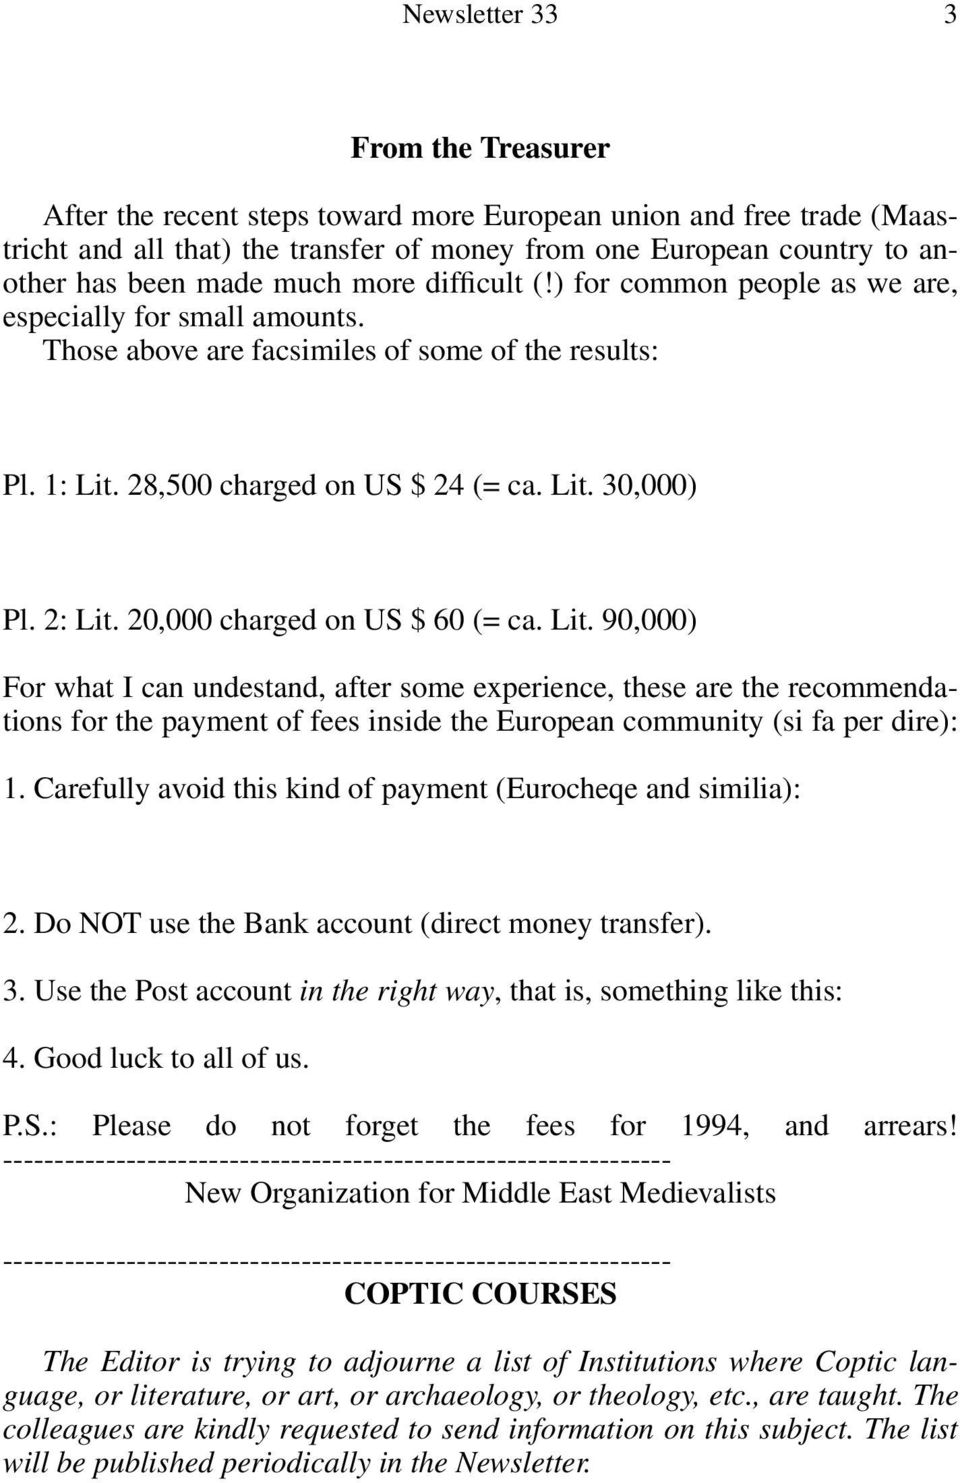 2: Lit. 20,000 charged on US $ 60 (= ca. Lit. 90,000) For what I can undestand, after some experience, these are the recommendations for the payment of fees inside the European community (si fa per dire): 1.